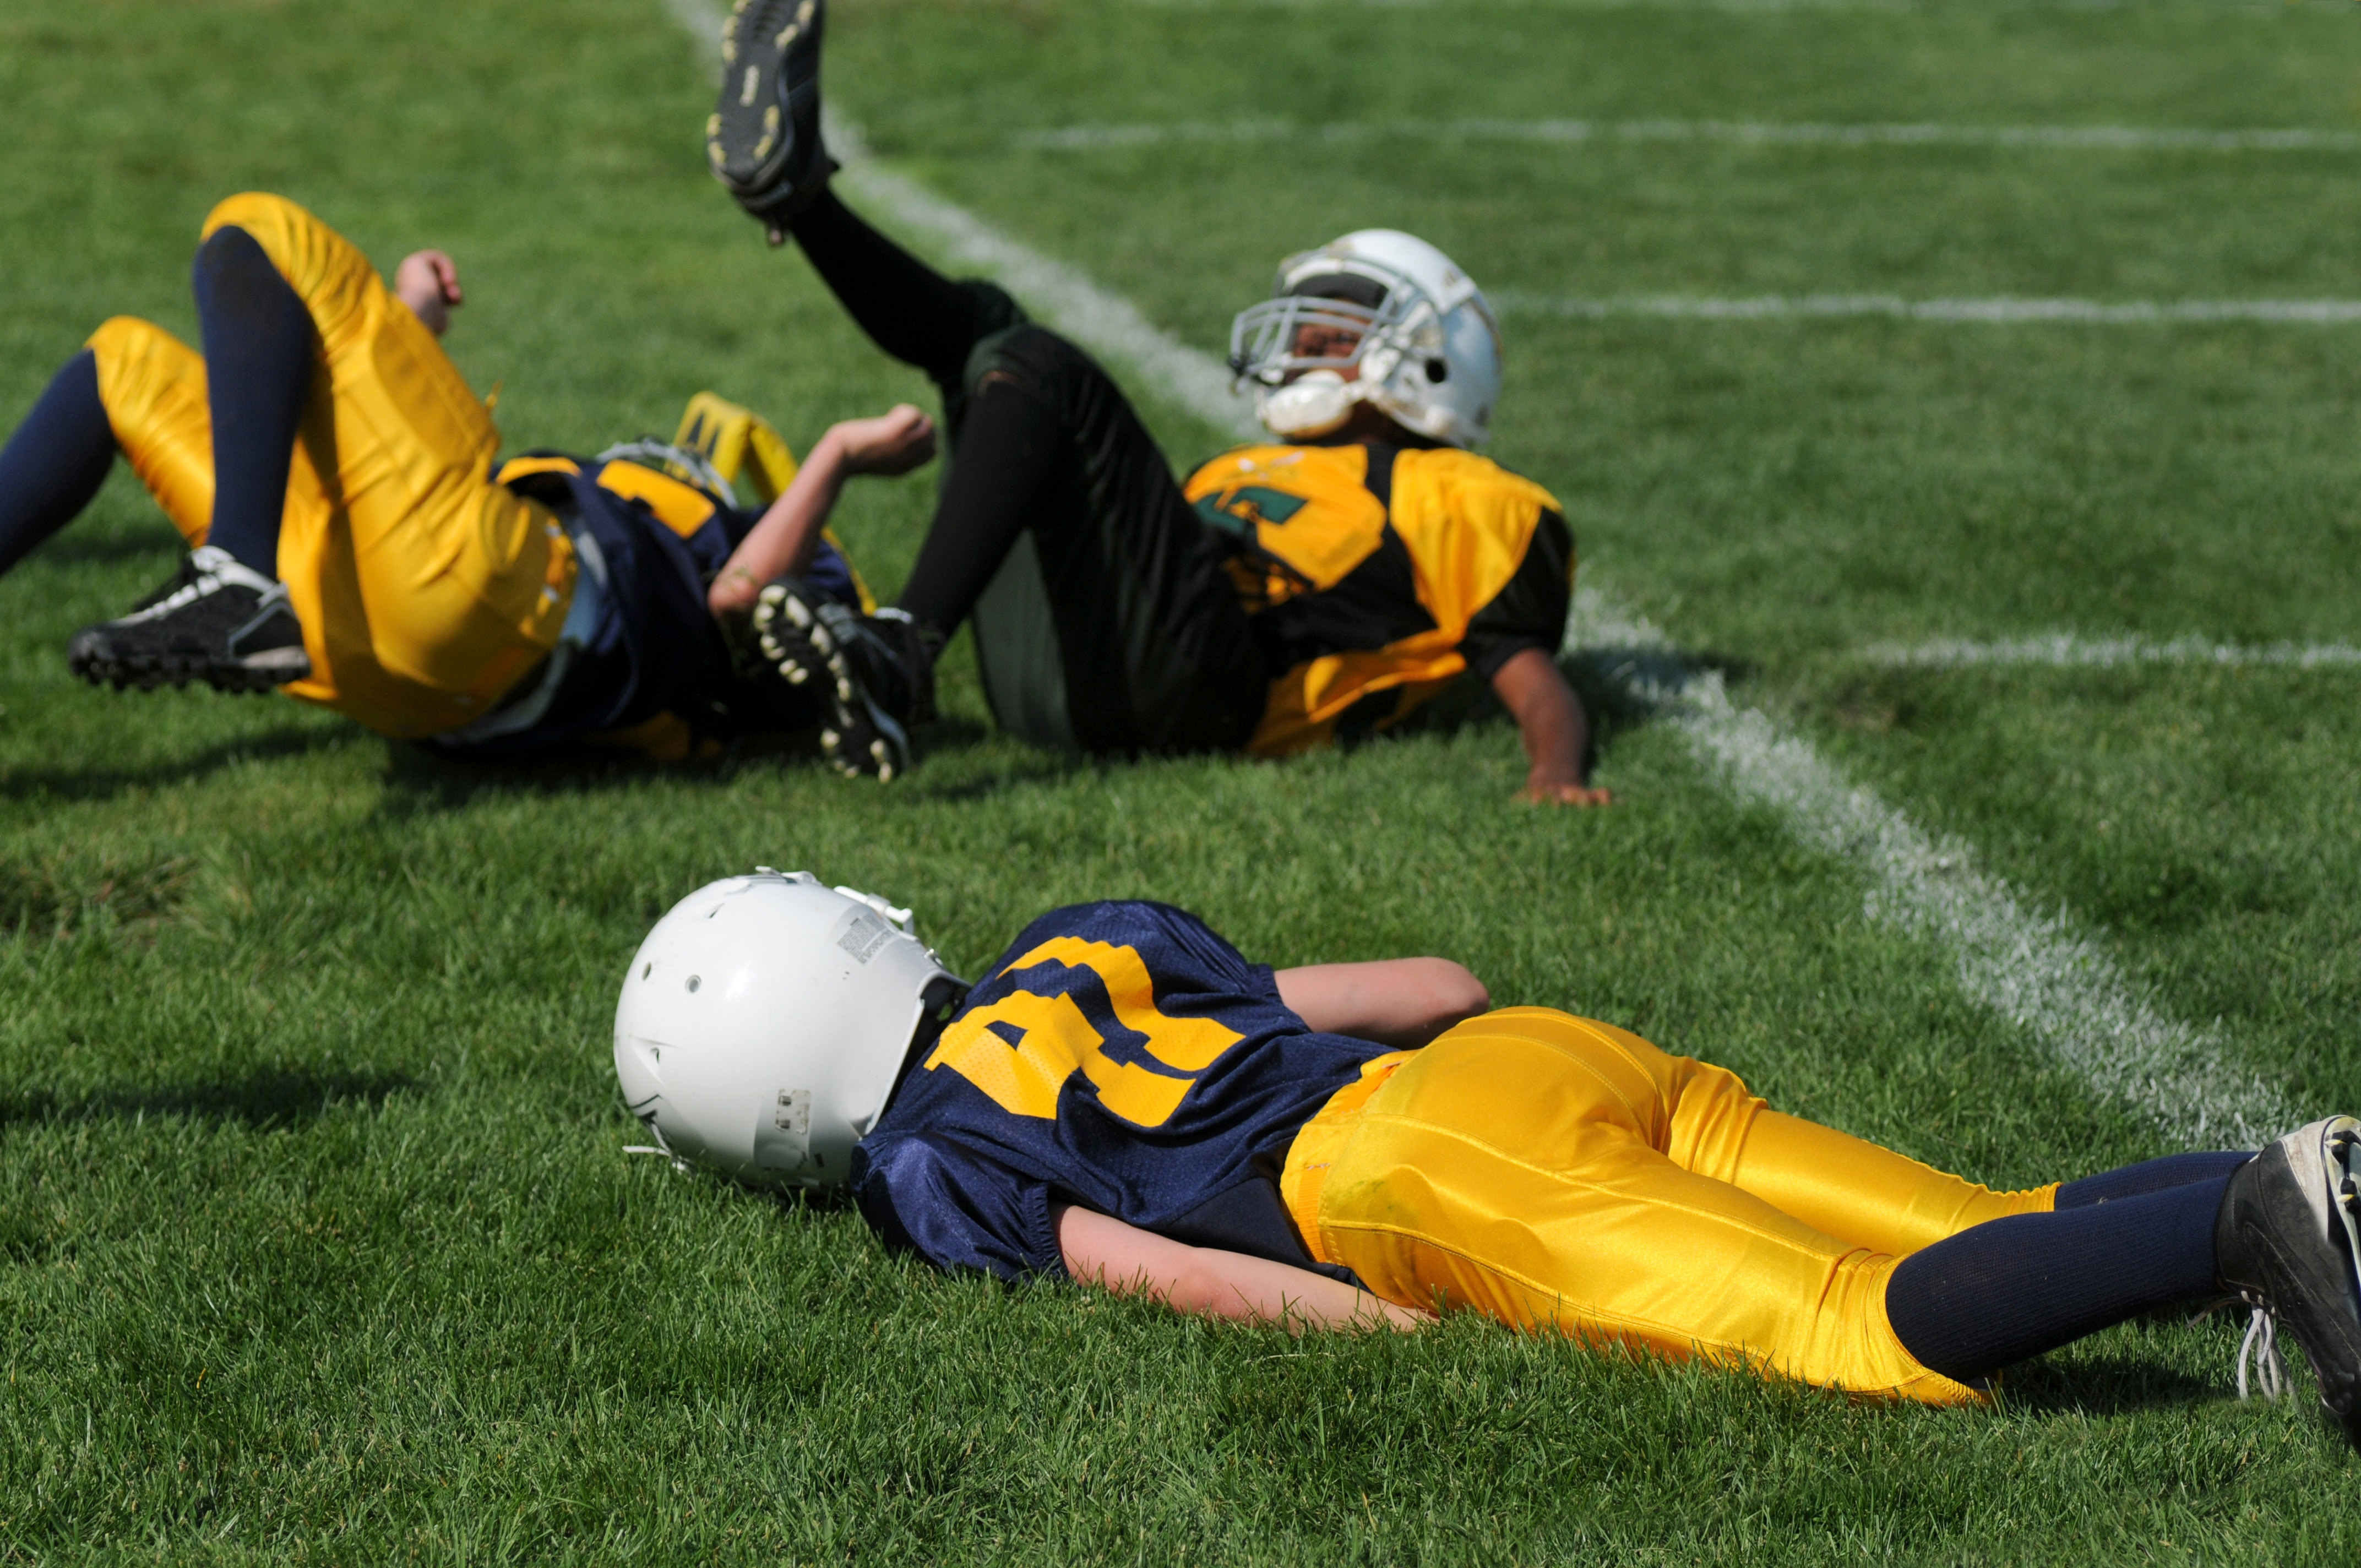 56c1cdce03e The NFL s concussion problem won t be solved with better helmets ...